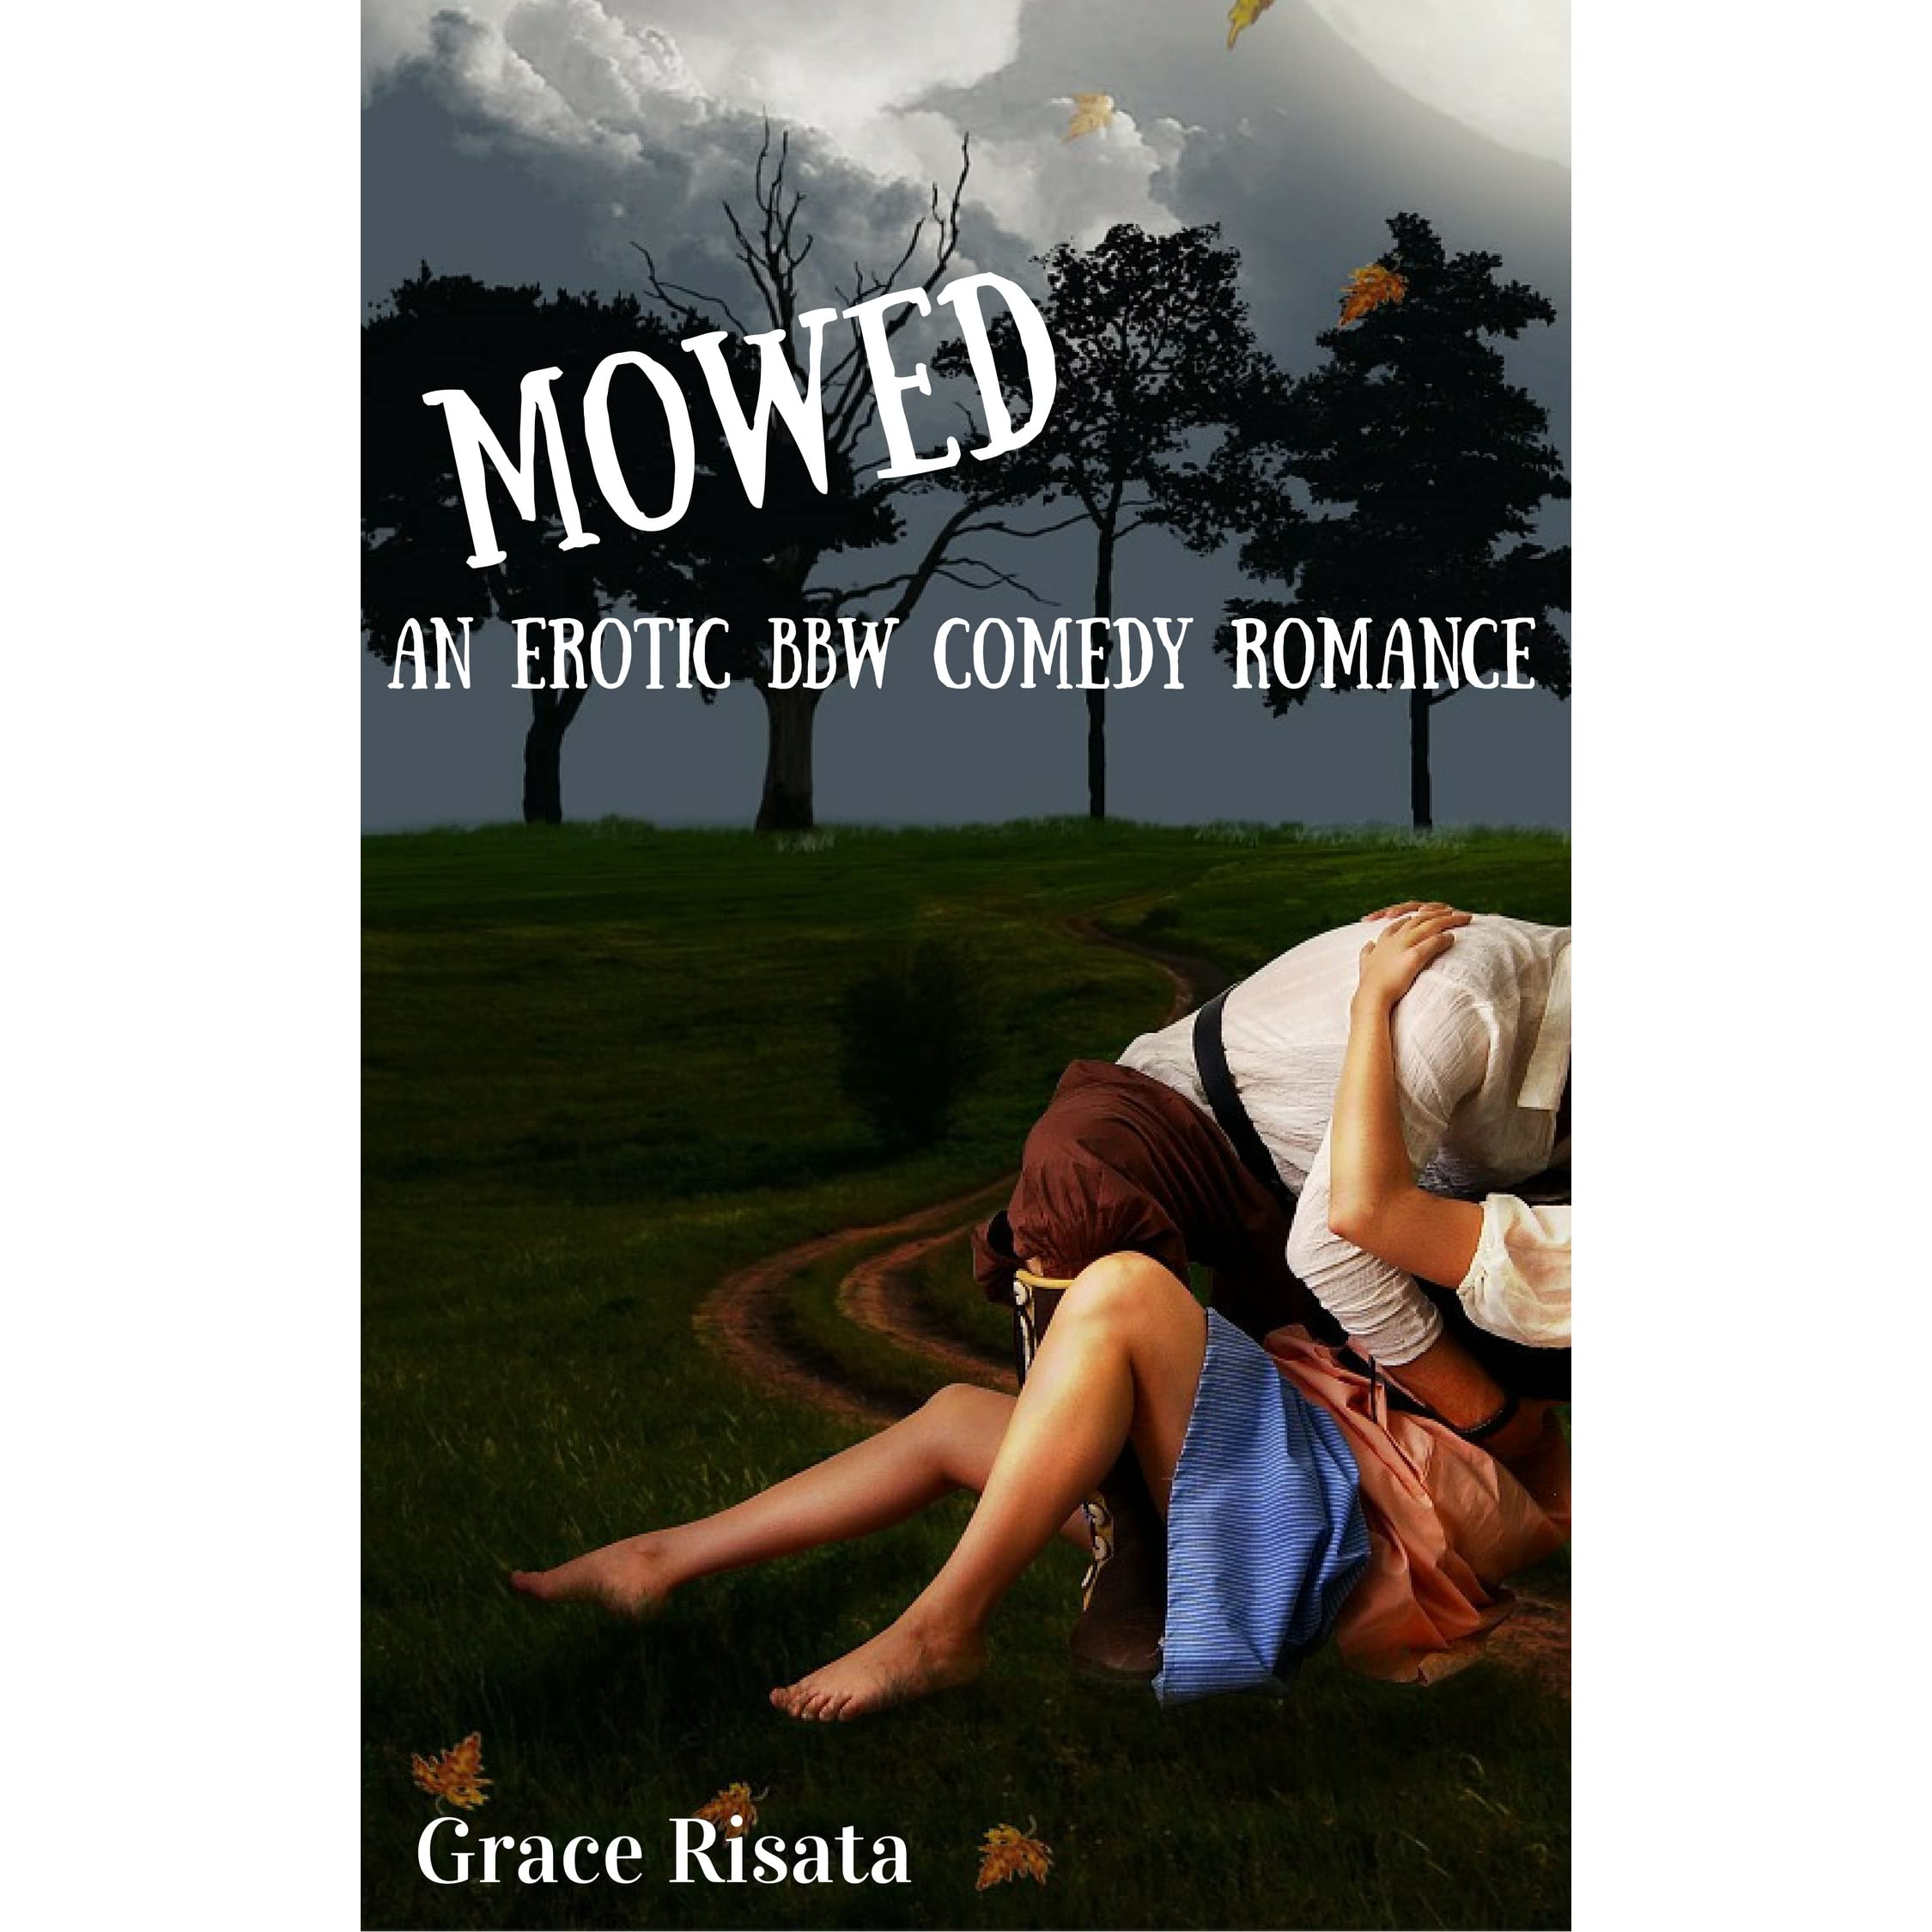 mowed: an erotic bbw comedy romancegrace risata